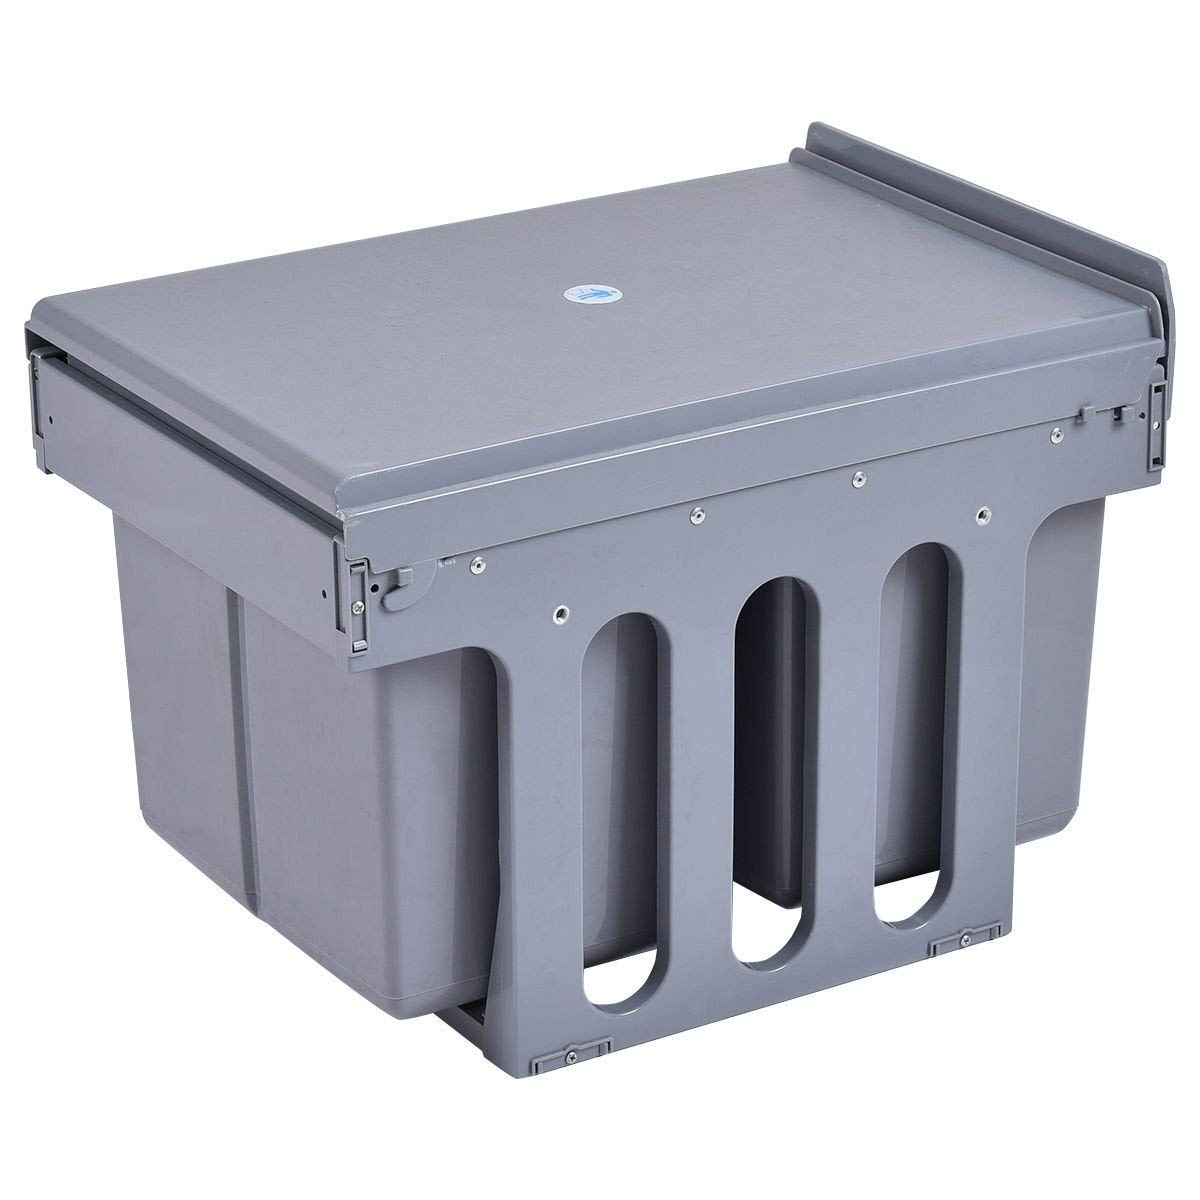 MD Group Waste Bin Recycling Trash Kitchen 2 Compartment Pull Out Garbage Can